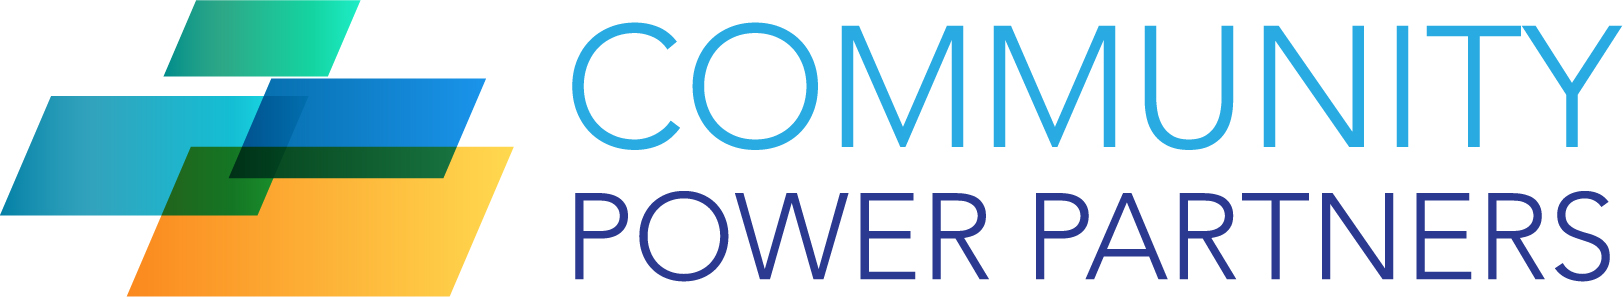 Community Power Partners